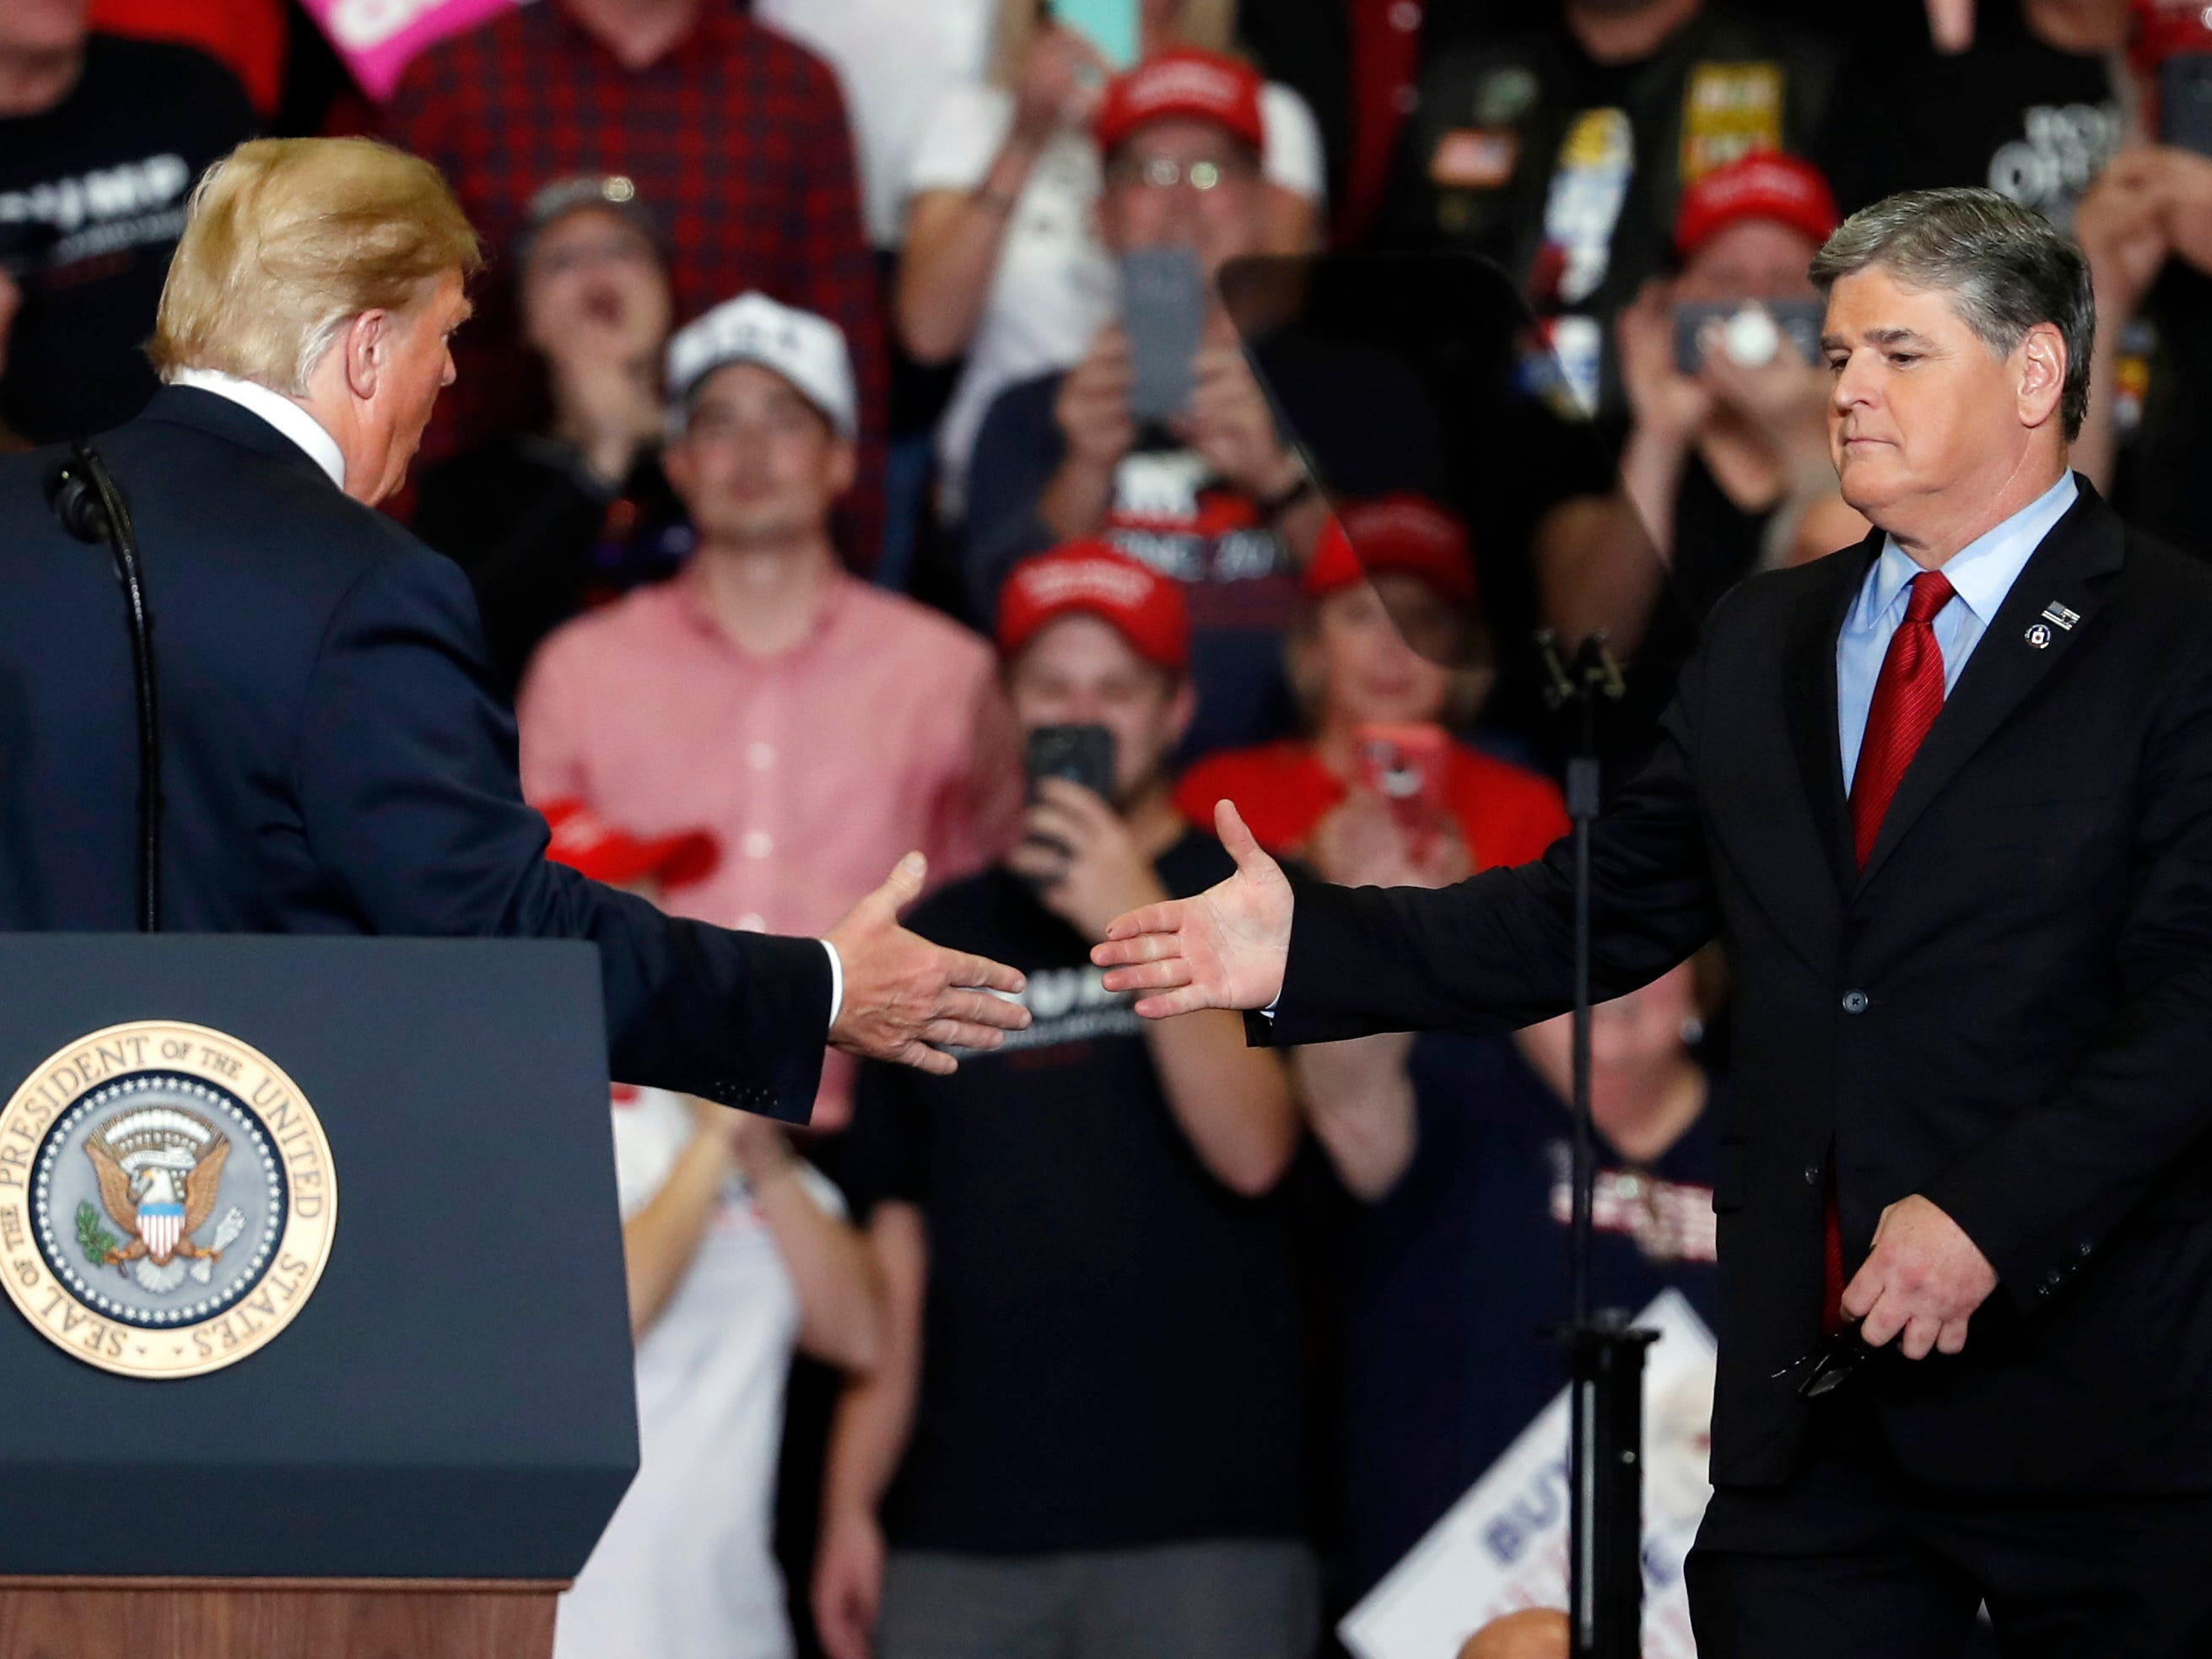 Sean Hannity: Fox News Channel host got in trouble over a political rally once before in Cincinnati